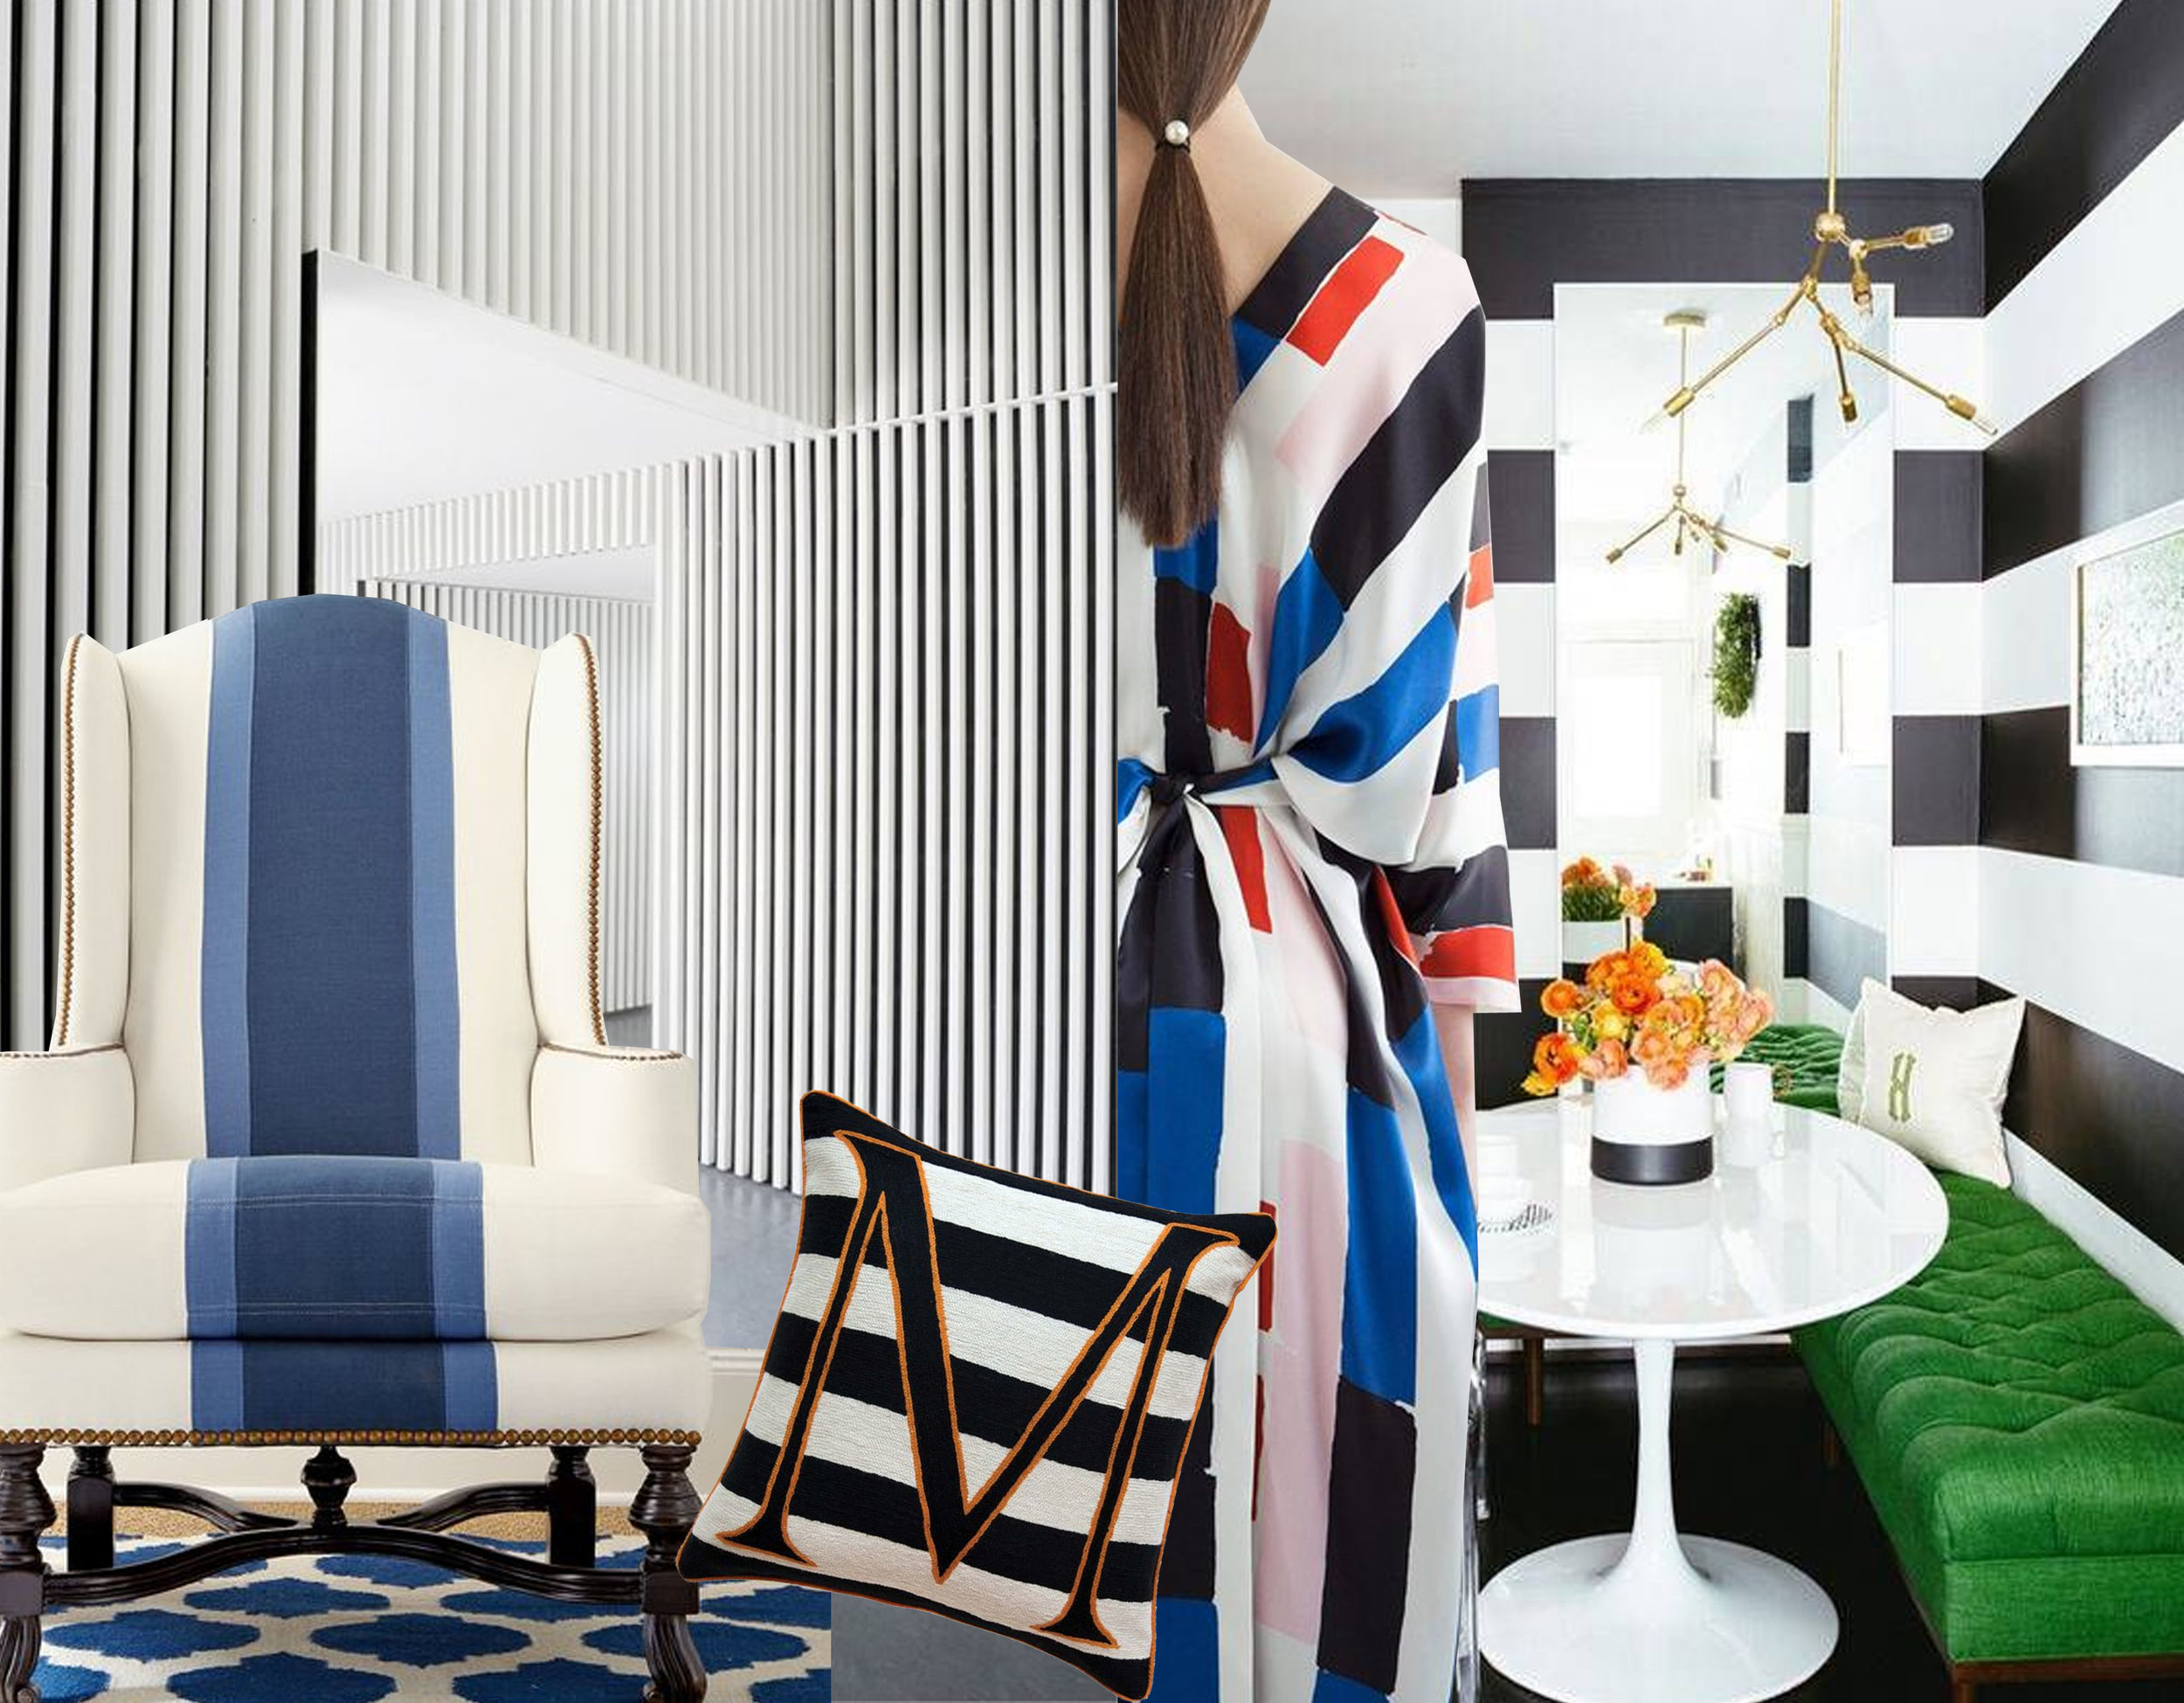 Ferreries cultural center via  ArchDaily  - wing chair  Horchow  - Alphabet M cushion  The Rugcompany  - Osman resort 2017 via  Vogue  - breakfst room via  Domino